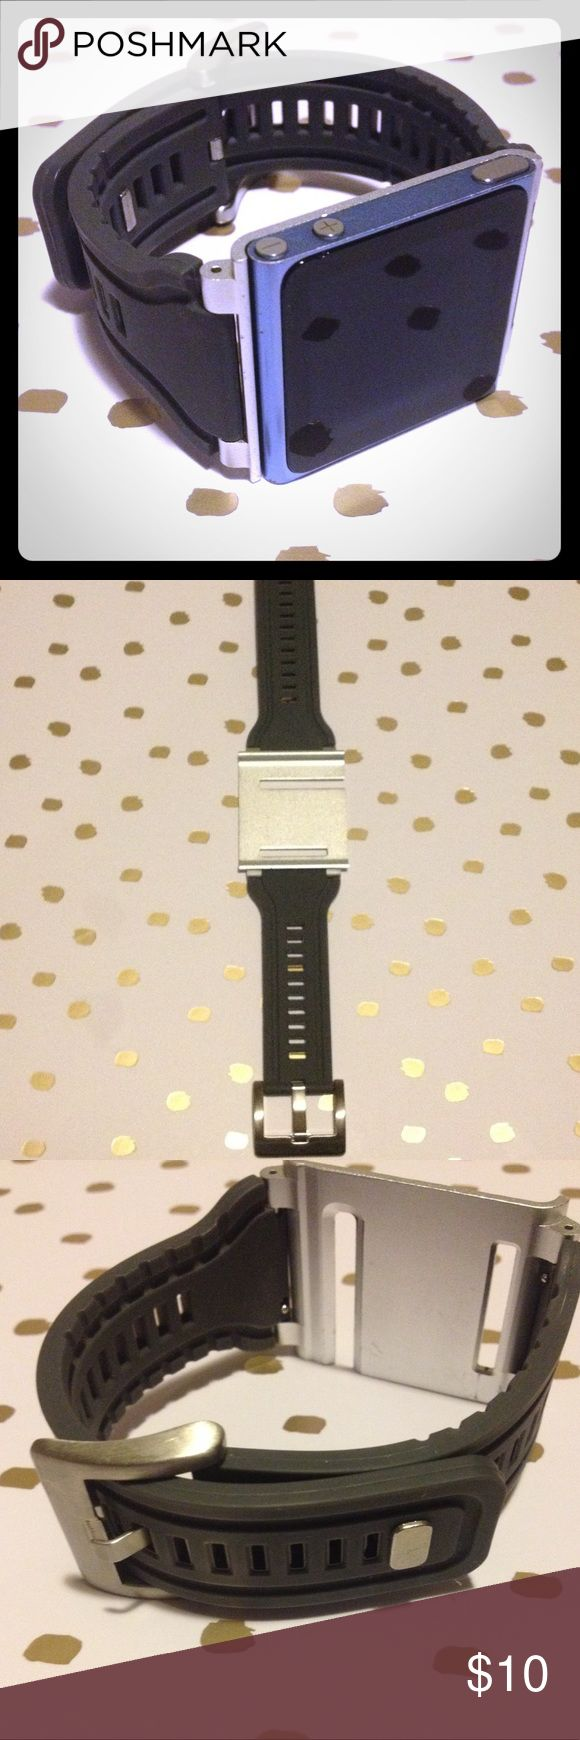 Silicone/ steel watch band for iPod nano 6th gen. Super comfy watch band for iPod nano, 6th generation. Easy to use. In great condition. iPod not included. Accessories Watches